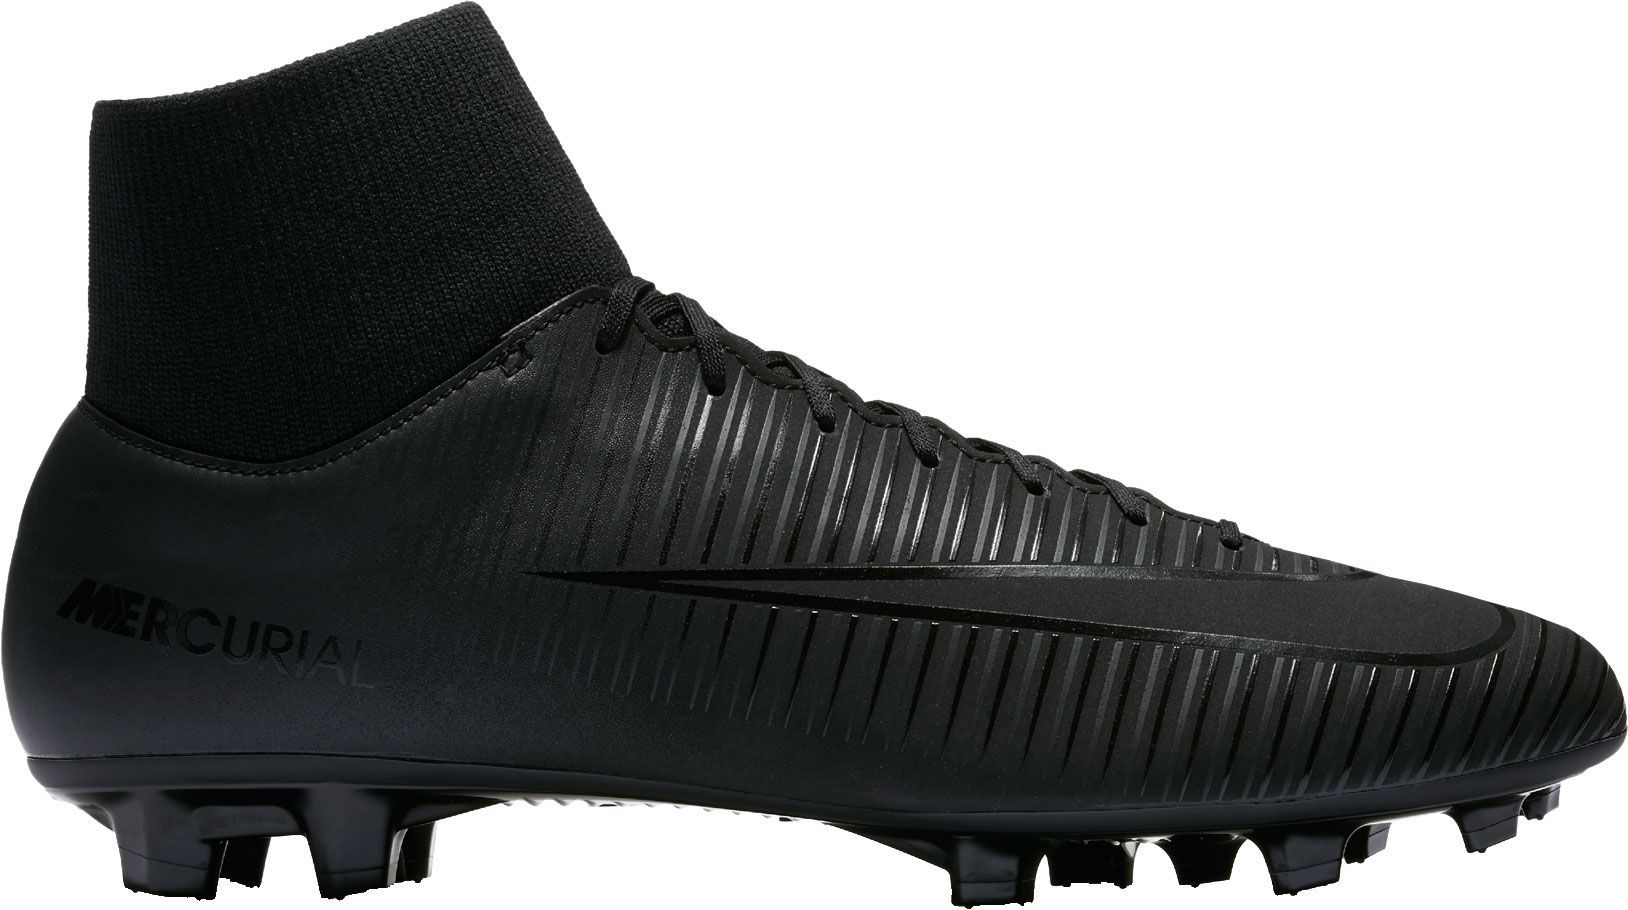 f152f000b72e Nike Mercurial Victory VI Dynamic Fit FG Soccer Cleats